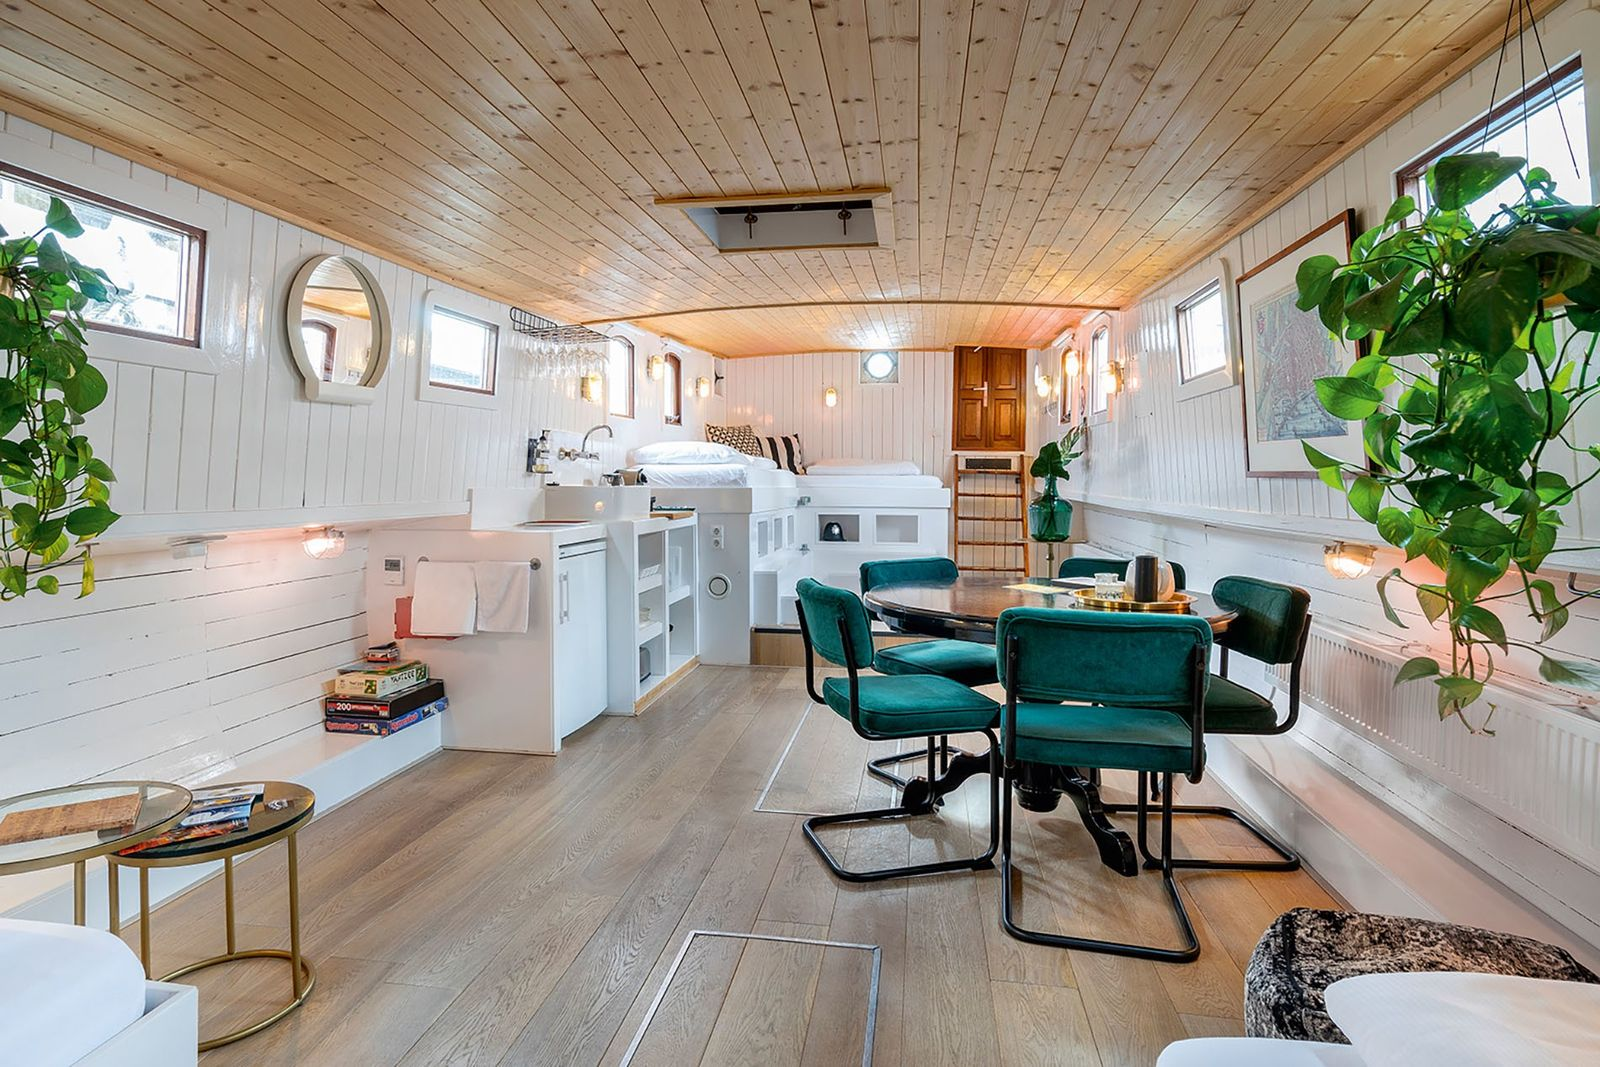 Hotel Asile Flottant sits in De Ceuvel, a shipyard-turned-eco-hub in Noord, where old boats have been ...